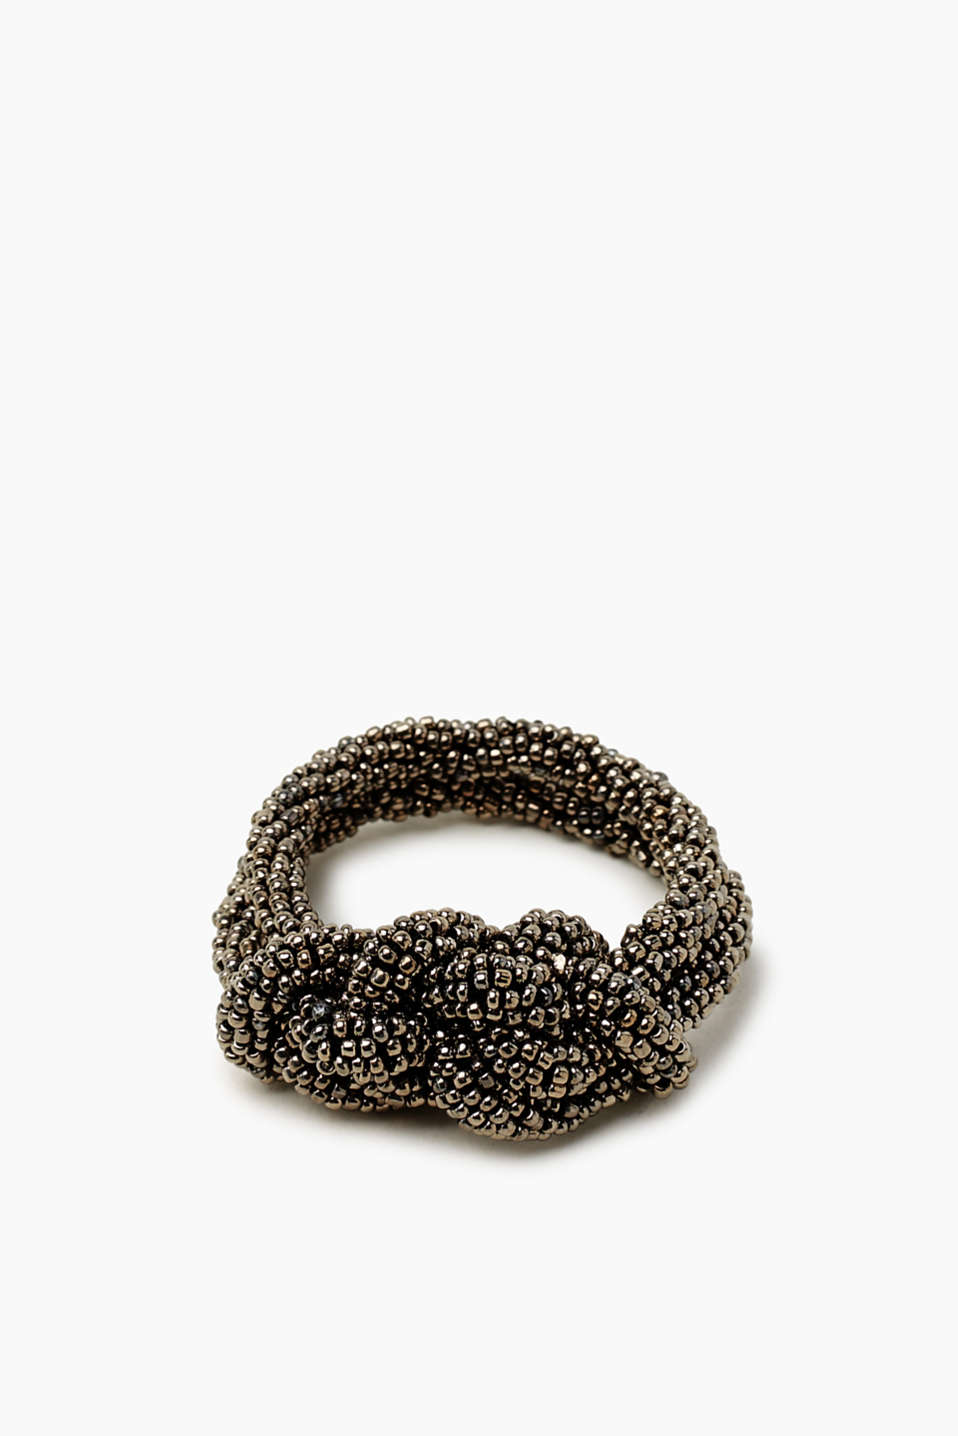 Sophisticated knots: This slightly elastic double bracelet is made up of numerous beads!